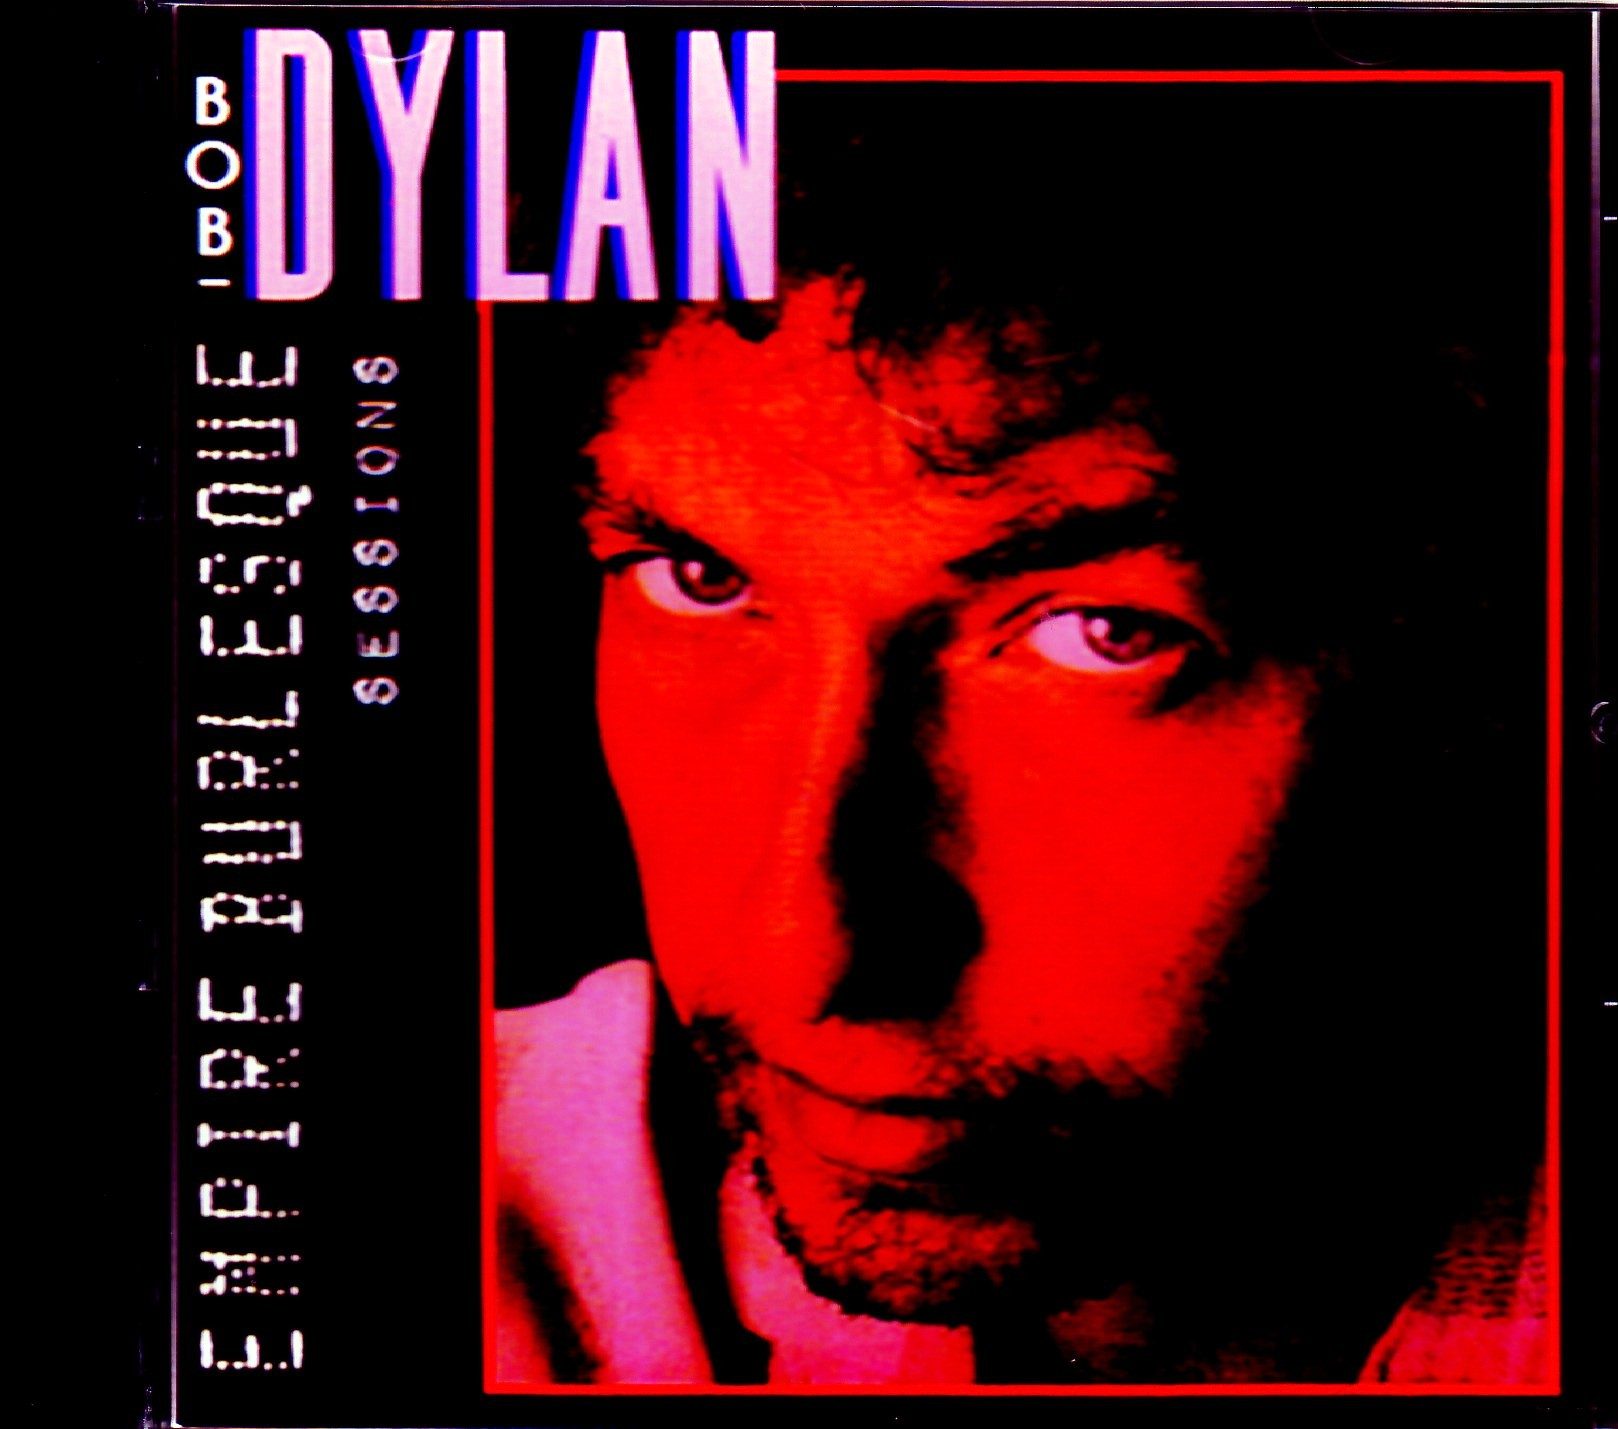 Bob Dylan ボブ・ディラン/Empire Burlesque Sessions